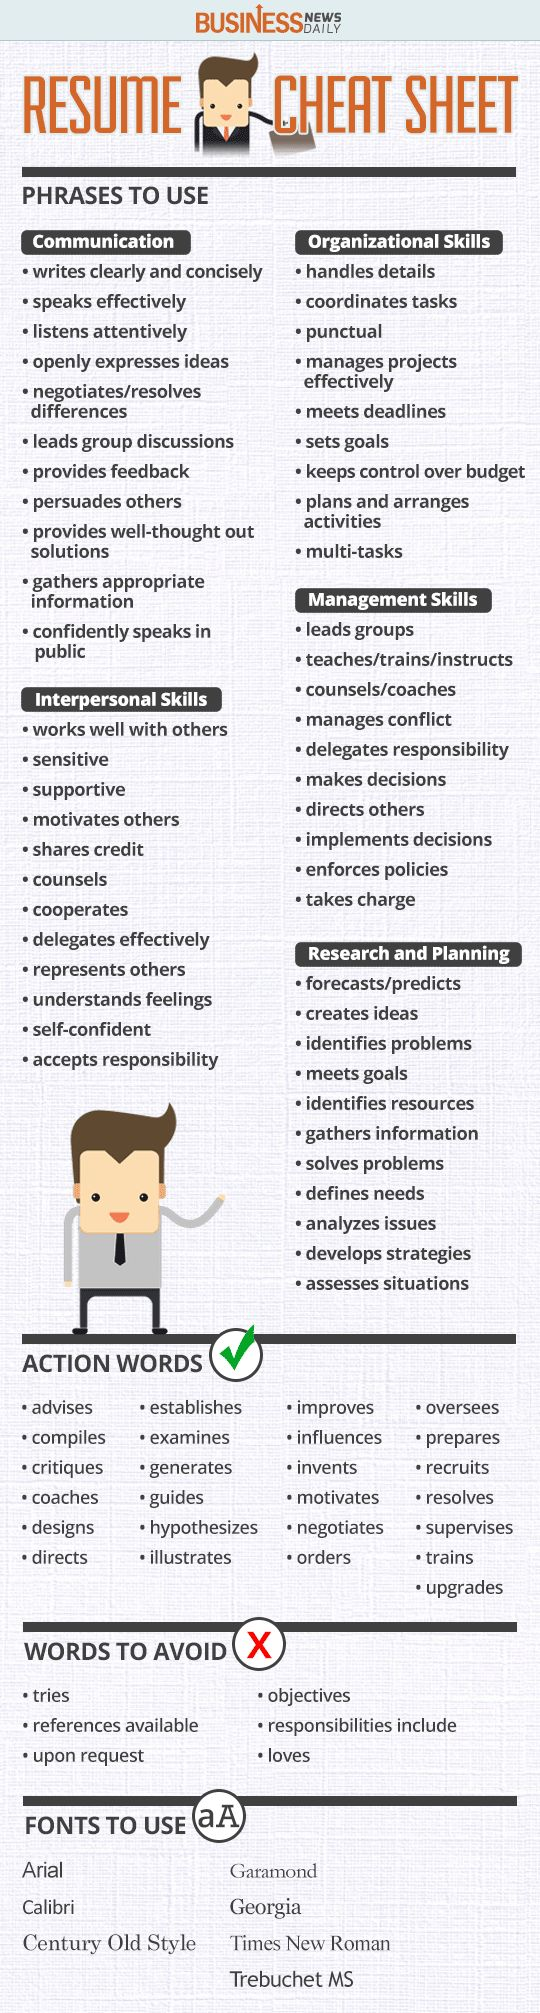 Opposenewapstandardsus  Winsome  Ideas About Resume On Pinterest  Cv Format Resume Cv And  With Lovely Resume Cheat Sheet Infographic Andrews Almost Done With A Complete Unit On Employment Which With Awesome Career Summary Resume Also Executive Assistant Sample Resume In Addition Resume Copy And Paste And Legal Resume Sample As Well As Creating A Resume For Free Additionally Nurse Resume Samples From Pinterestcom With Opposenewapstandardsus  Lovely  Ideas About Resume On Pinterest  Cv Format Resume Cv And  With Awesome Resume Cheat Sheet Infographic Andrews Almost Done With A Complete Unit On Employment Which And Winsome Career Summary Resume Also Executive Assistant Sample Resume In Addition Resume Copy And Paste From Pinterestcom